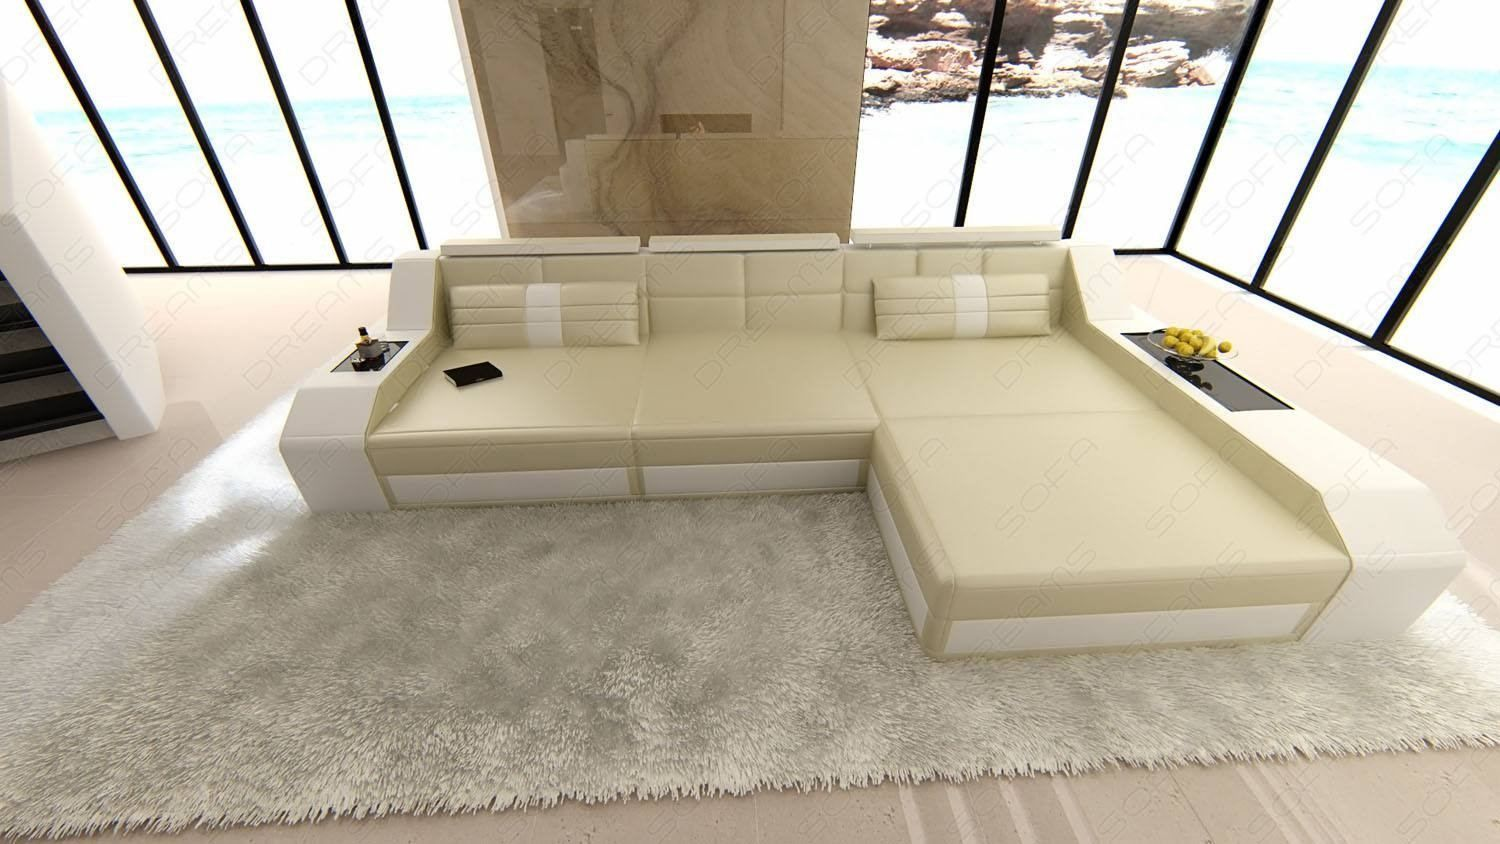 Sectional Leather Sofa Houston L Shape In 2020 Small Sectional Sofa Leather Sofa Modern Furniture Living Room